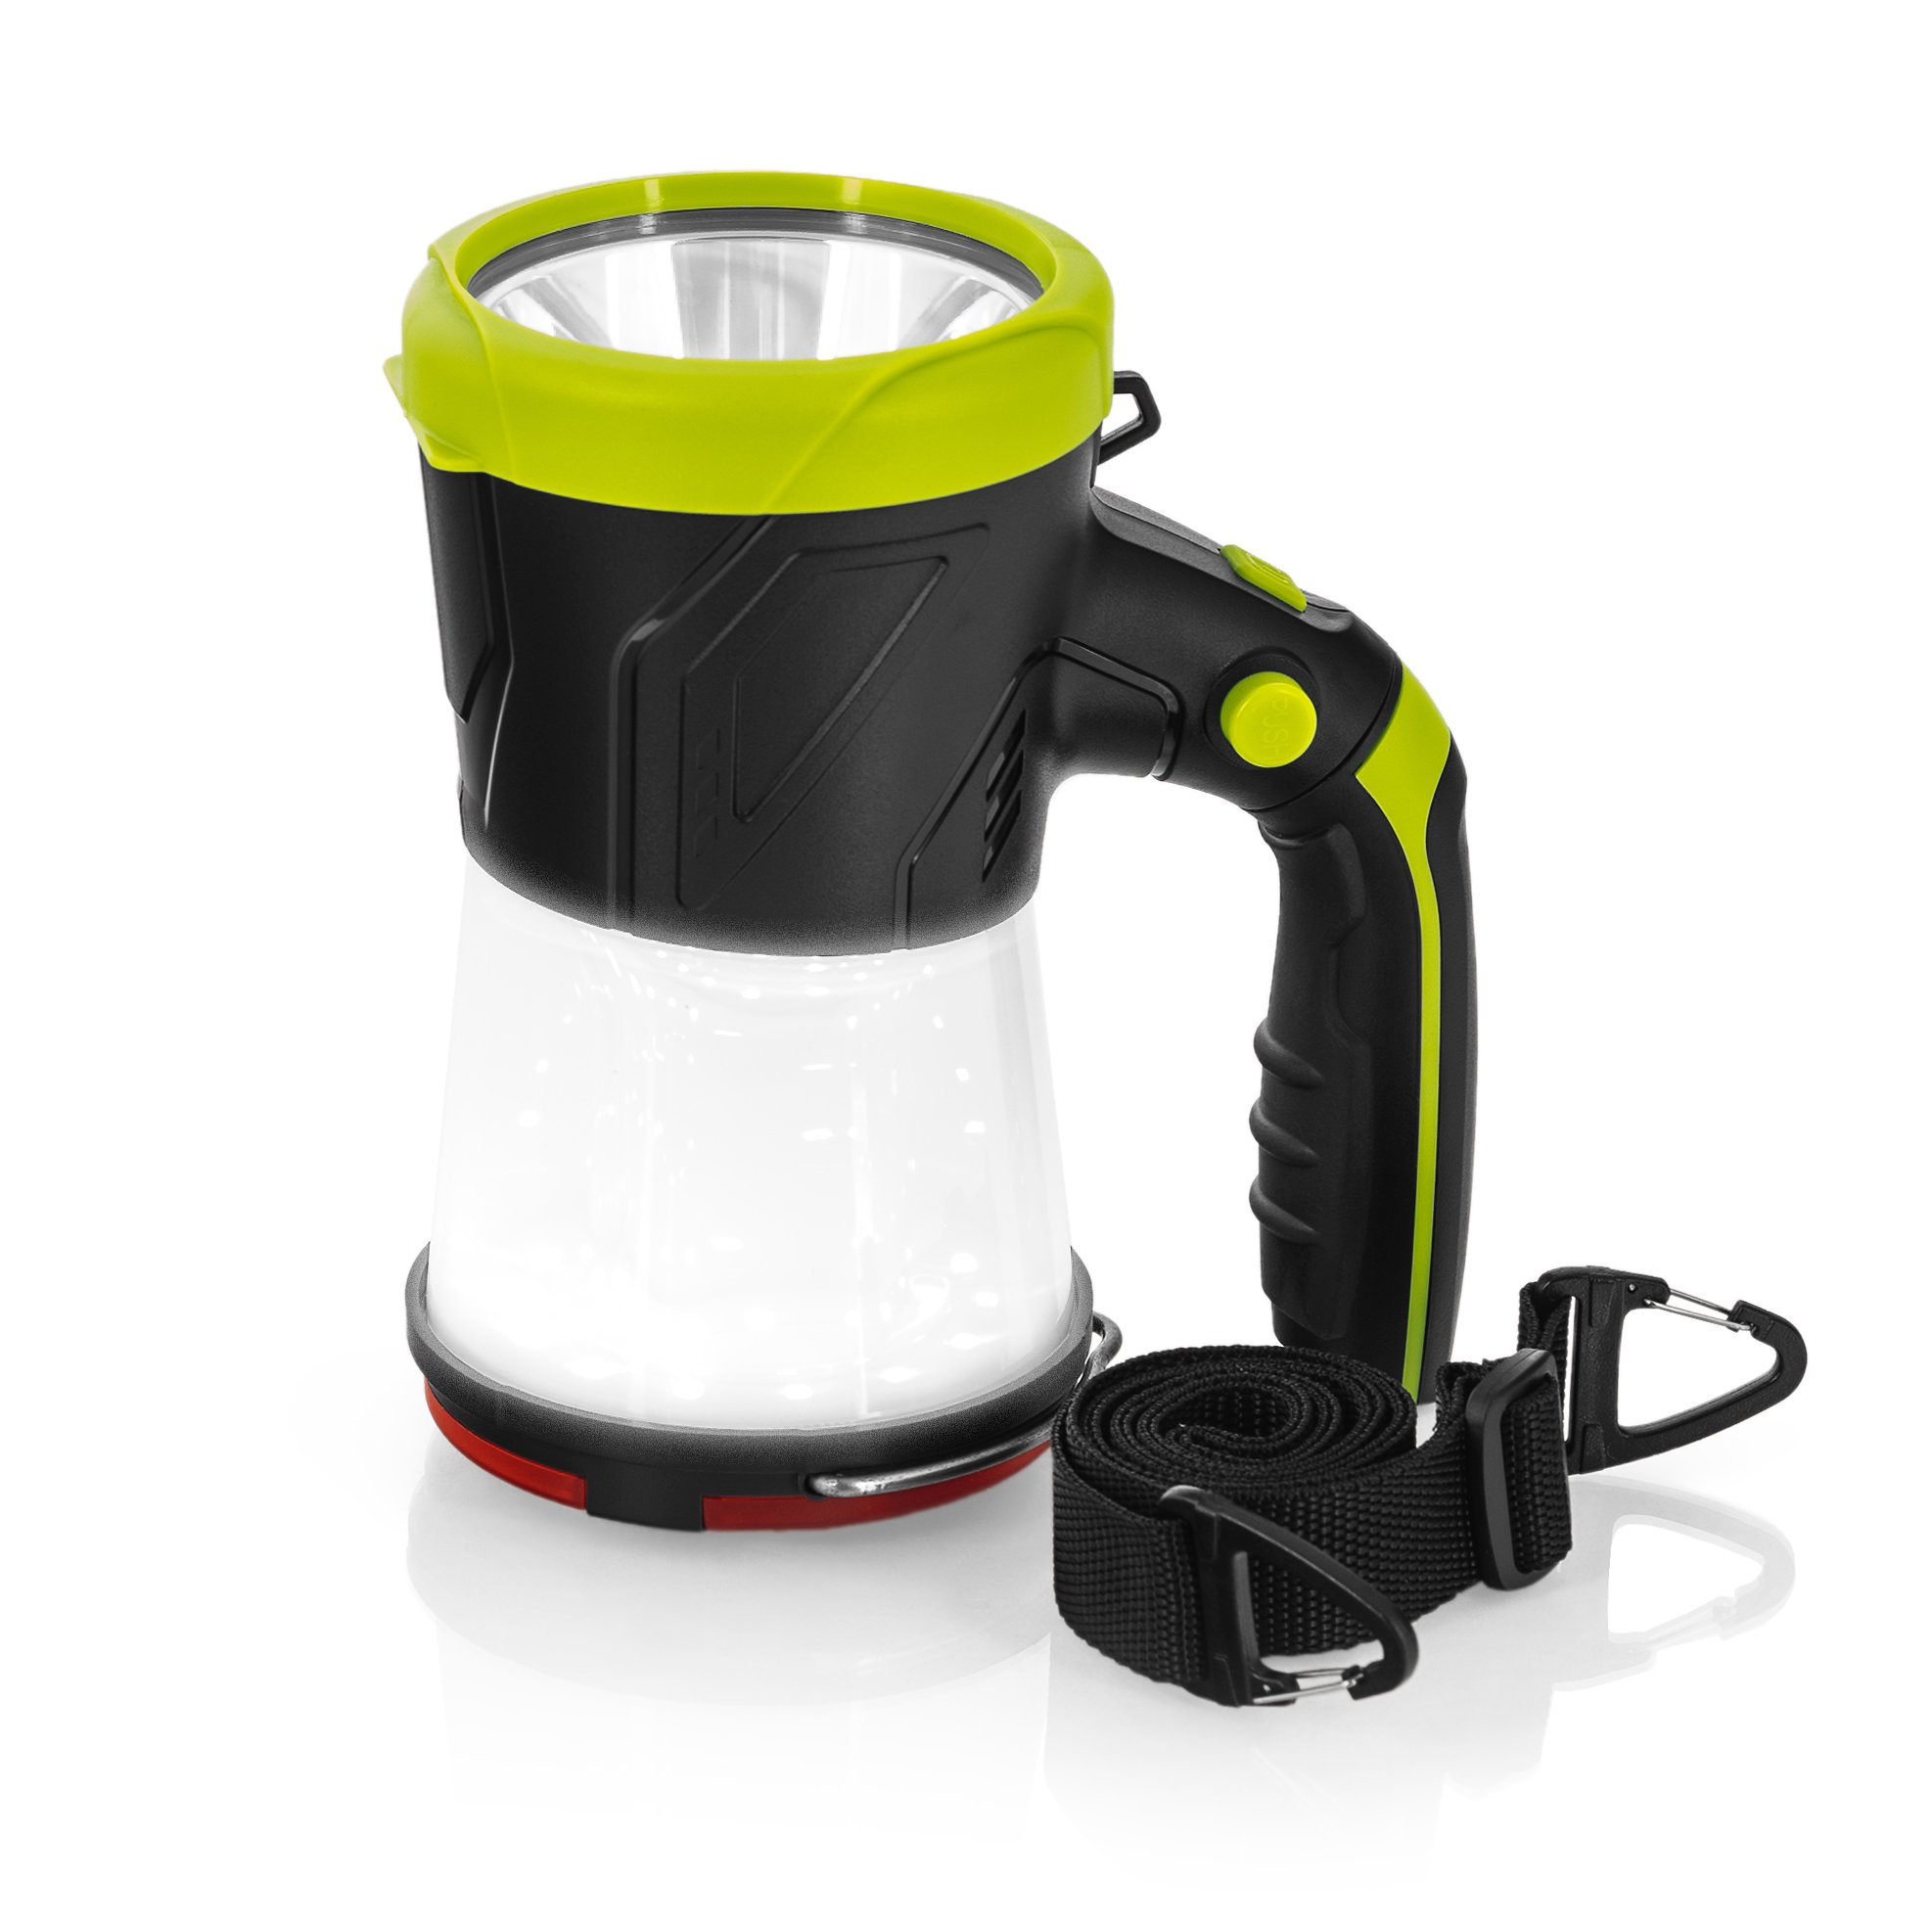 Rechargeable LED lantern Flashlight, USB Charging Cord Included, Super Bright 4 in 1 Portable LED Searchlight & Torch Light, Great for hiking, Camping Gear, Indoor-Outdoor Use, Shoulder Strap Included by SAMLITE (Image #2)